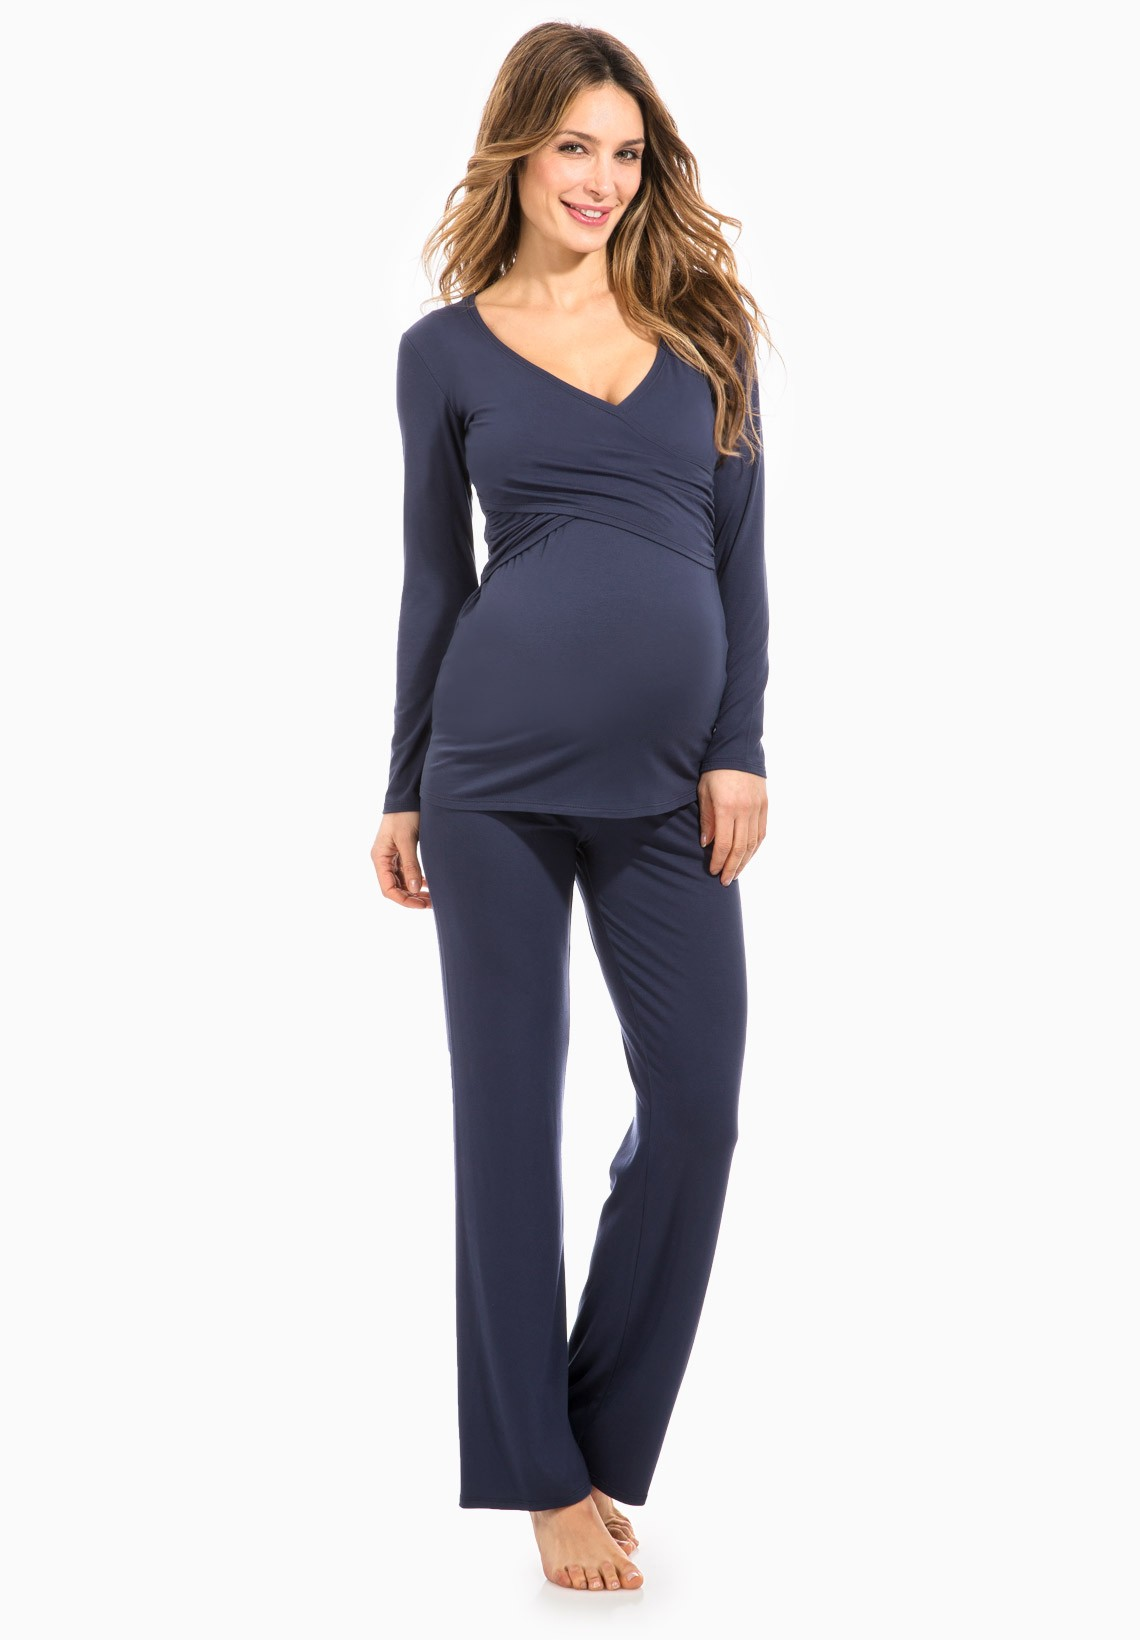 Discover the latest maternity lingerie with ASOS. Shop from maternity bras, underwear & maternity pyjamas with ASOS.